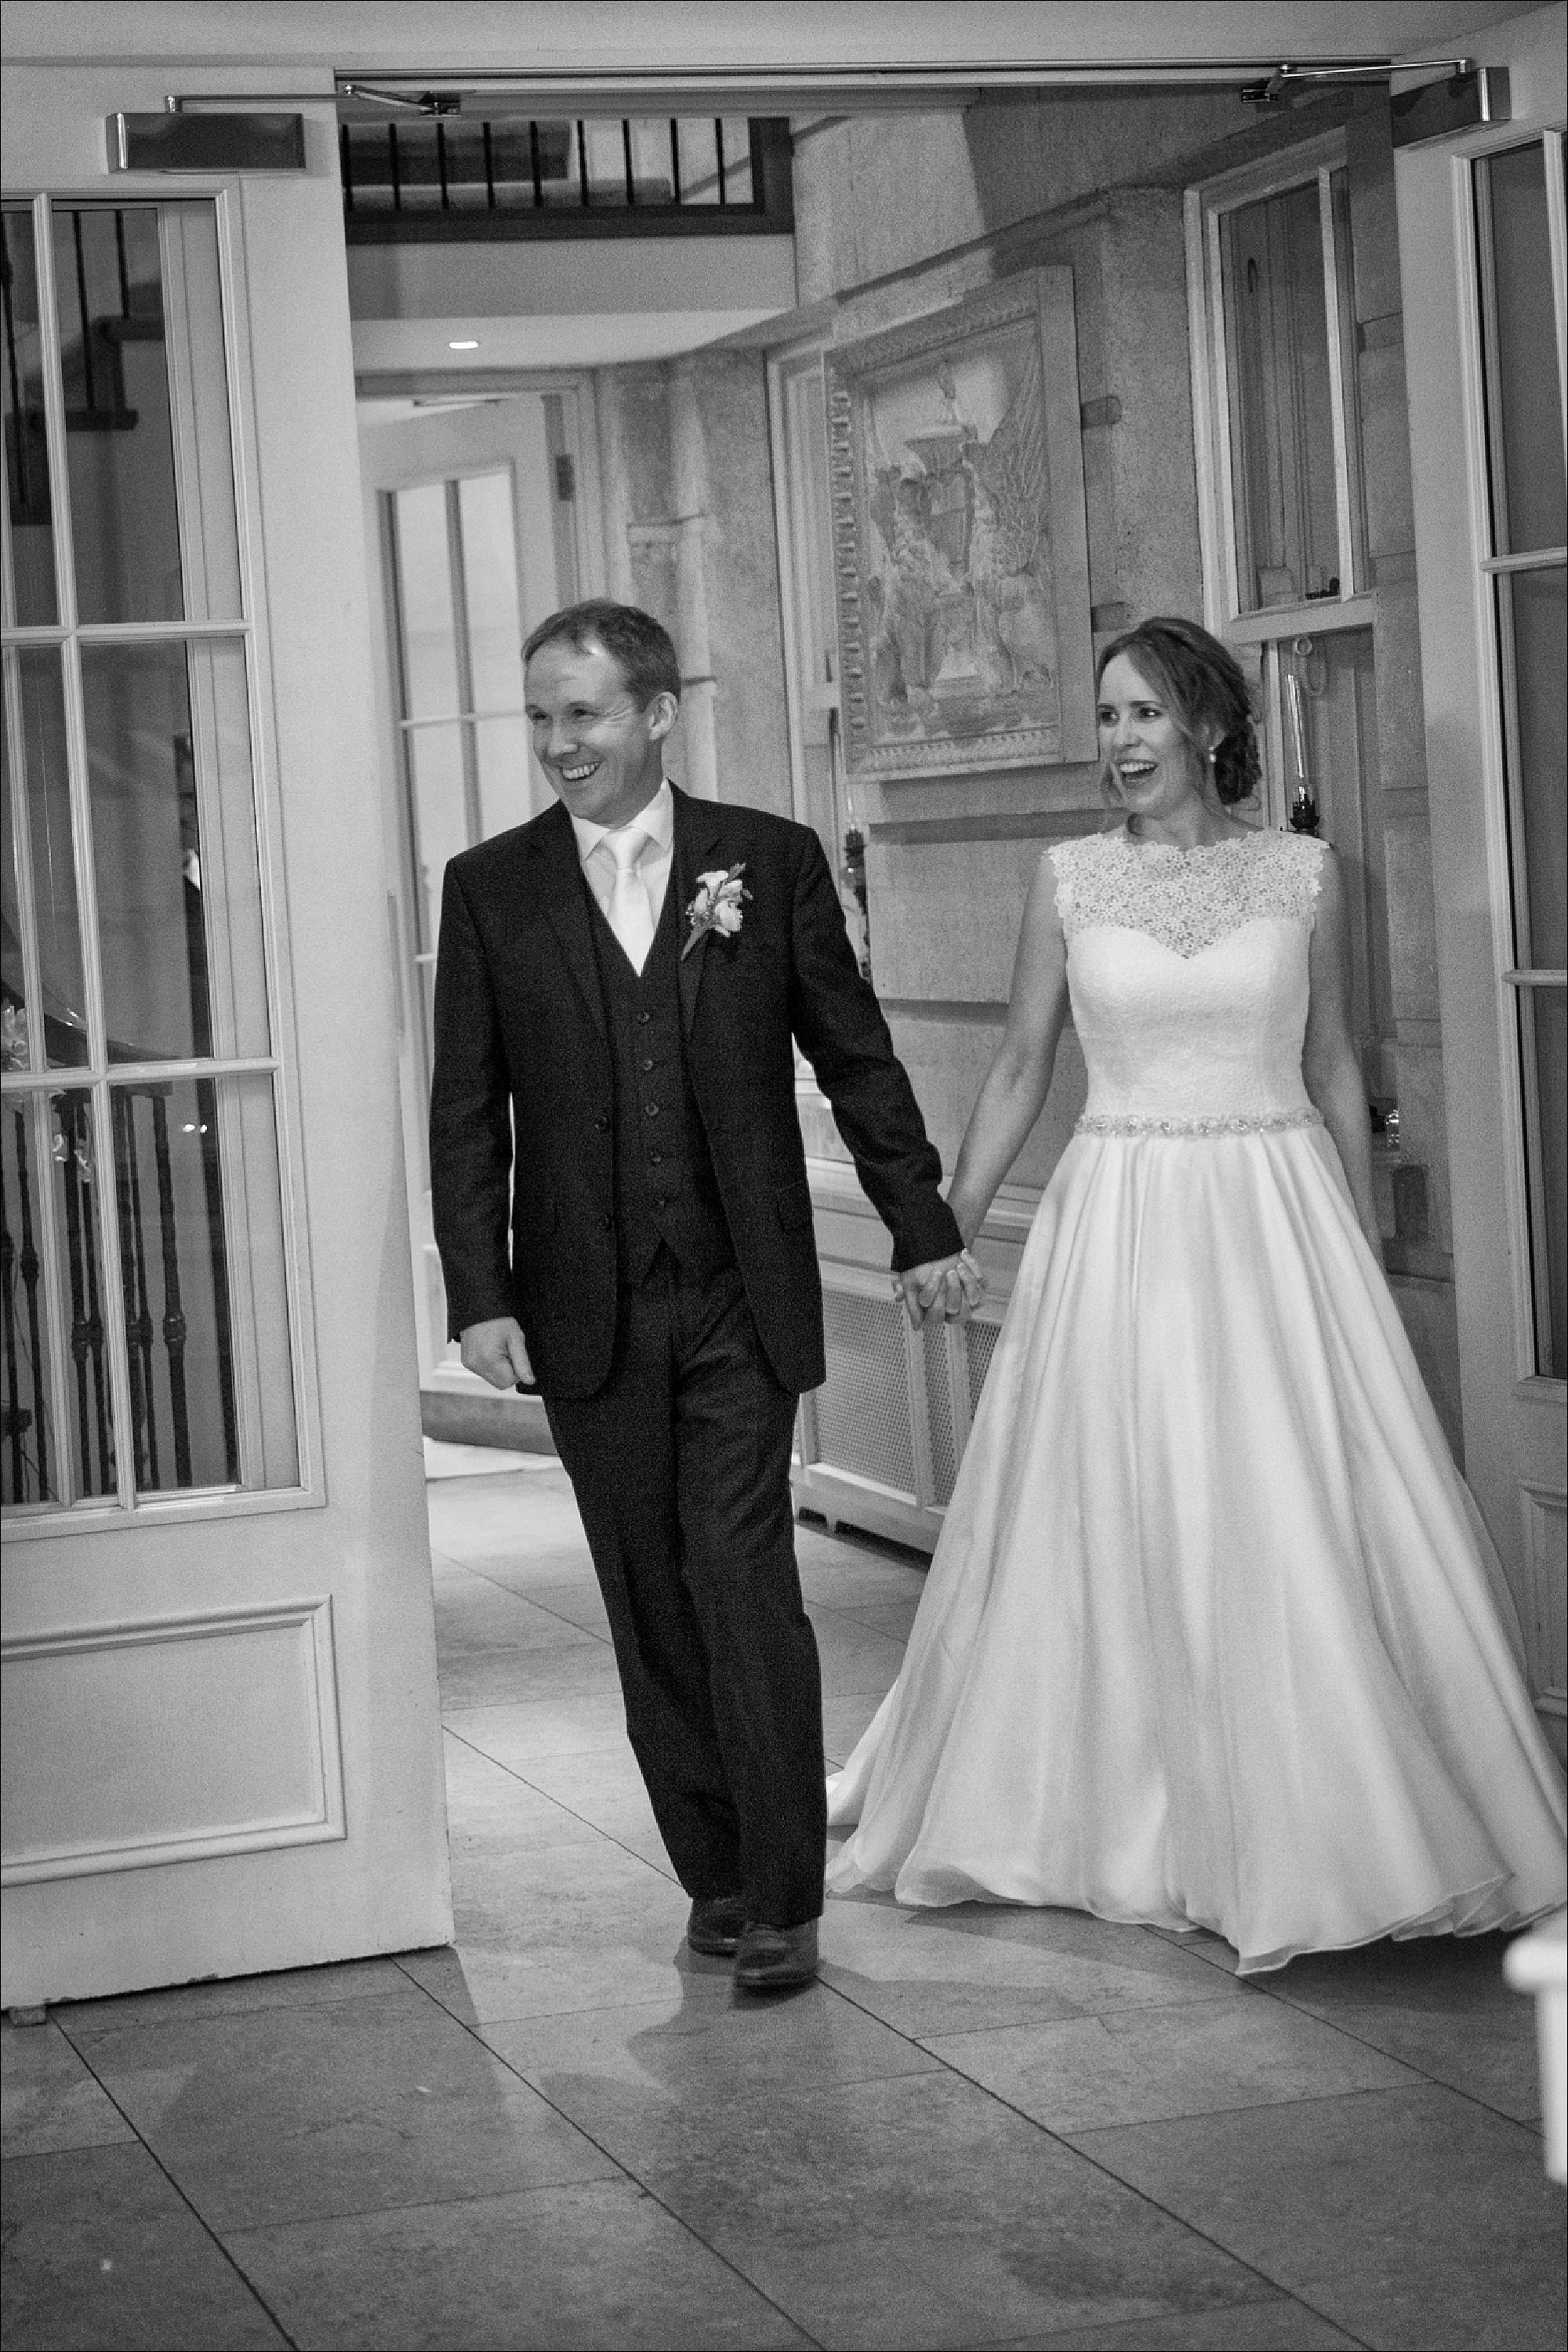 dublin wedding photographer david duignan photography tankardstown weddings slane rathfeigh church ireland 0049